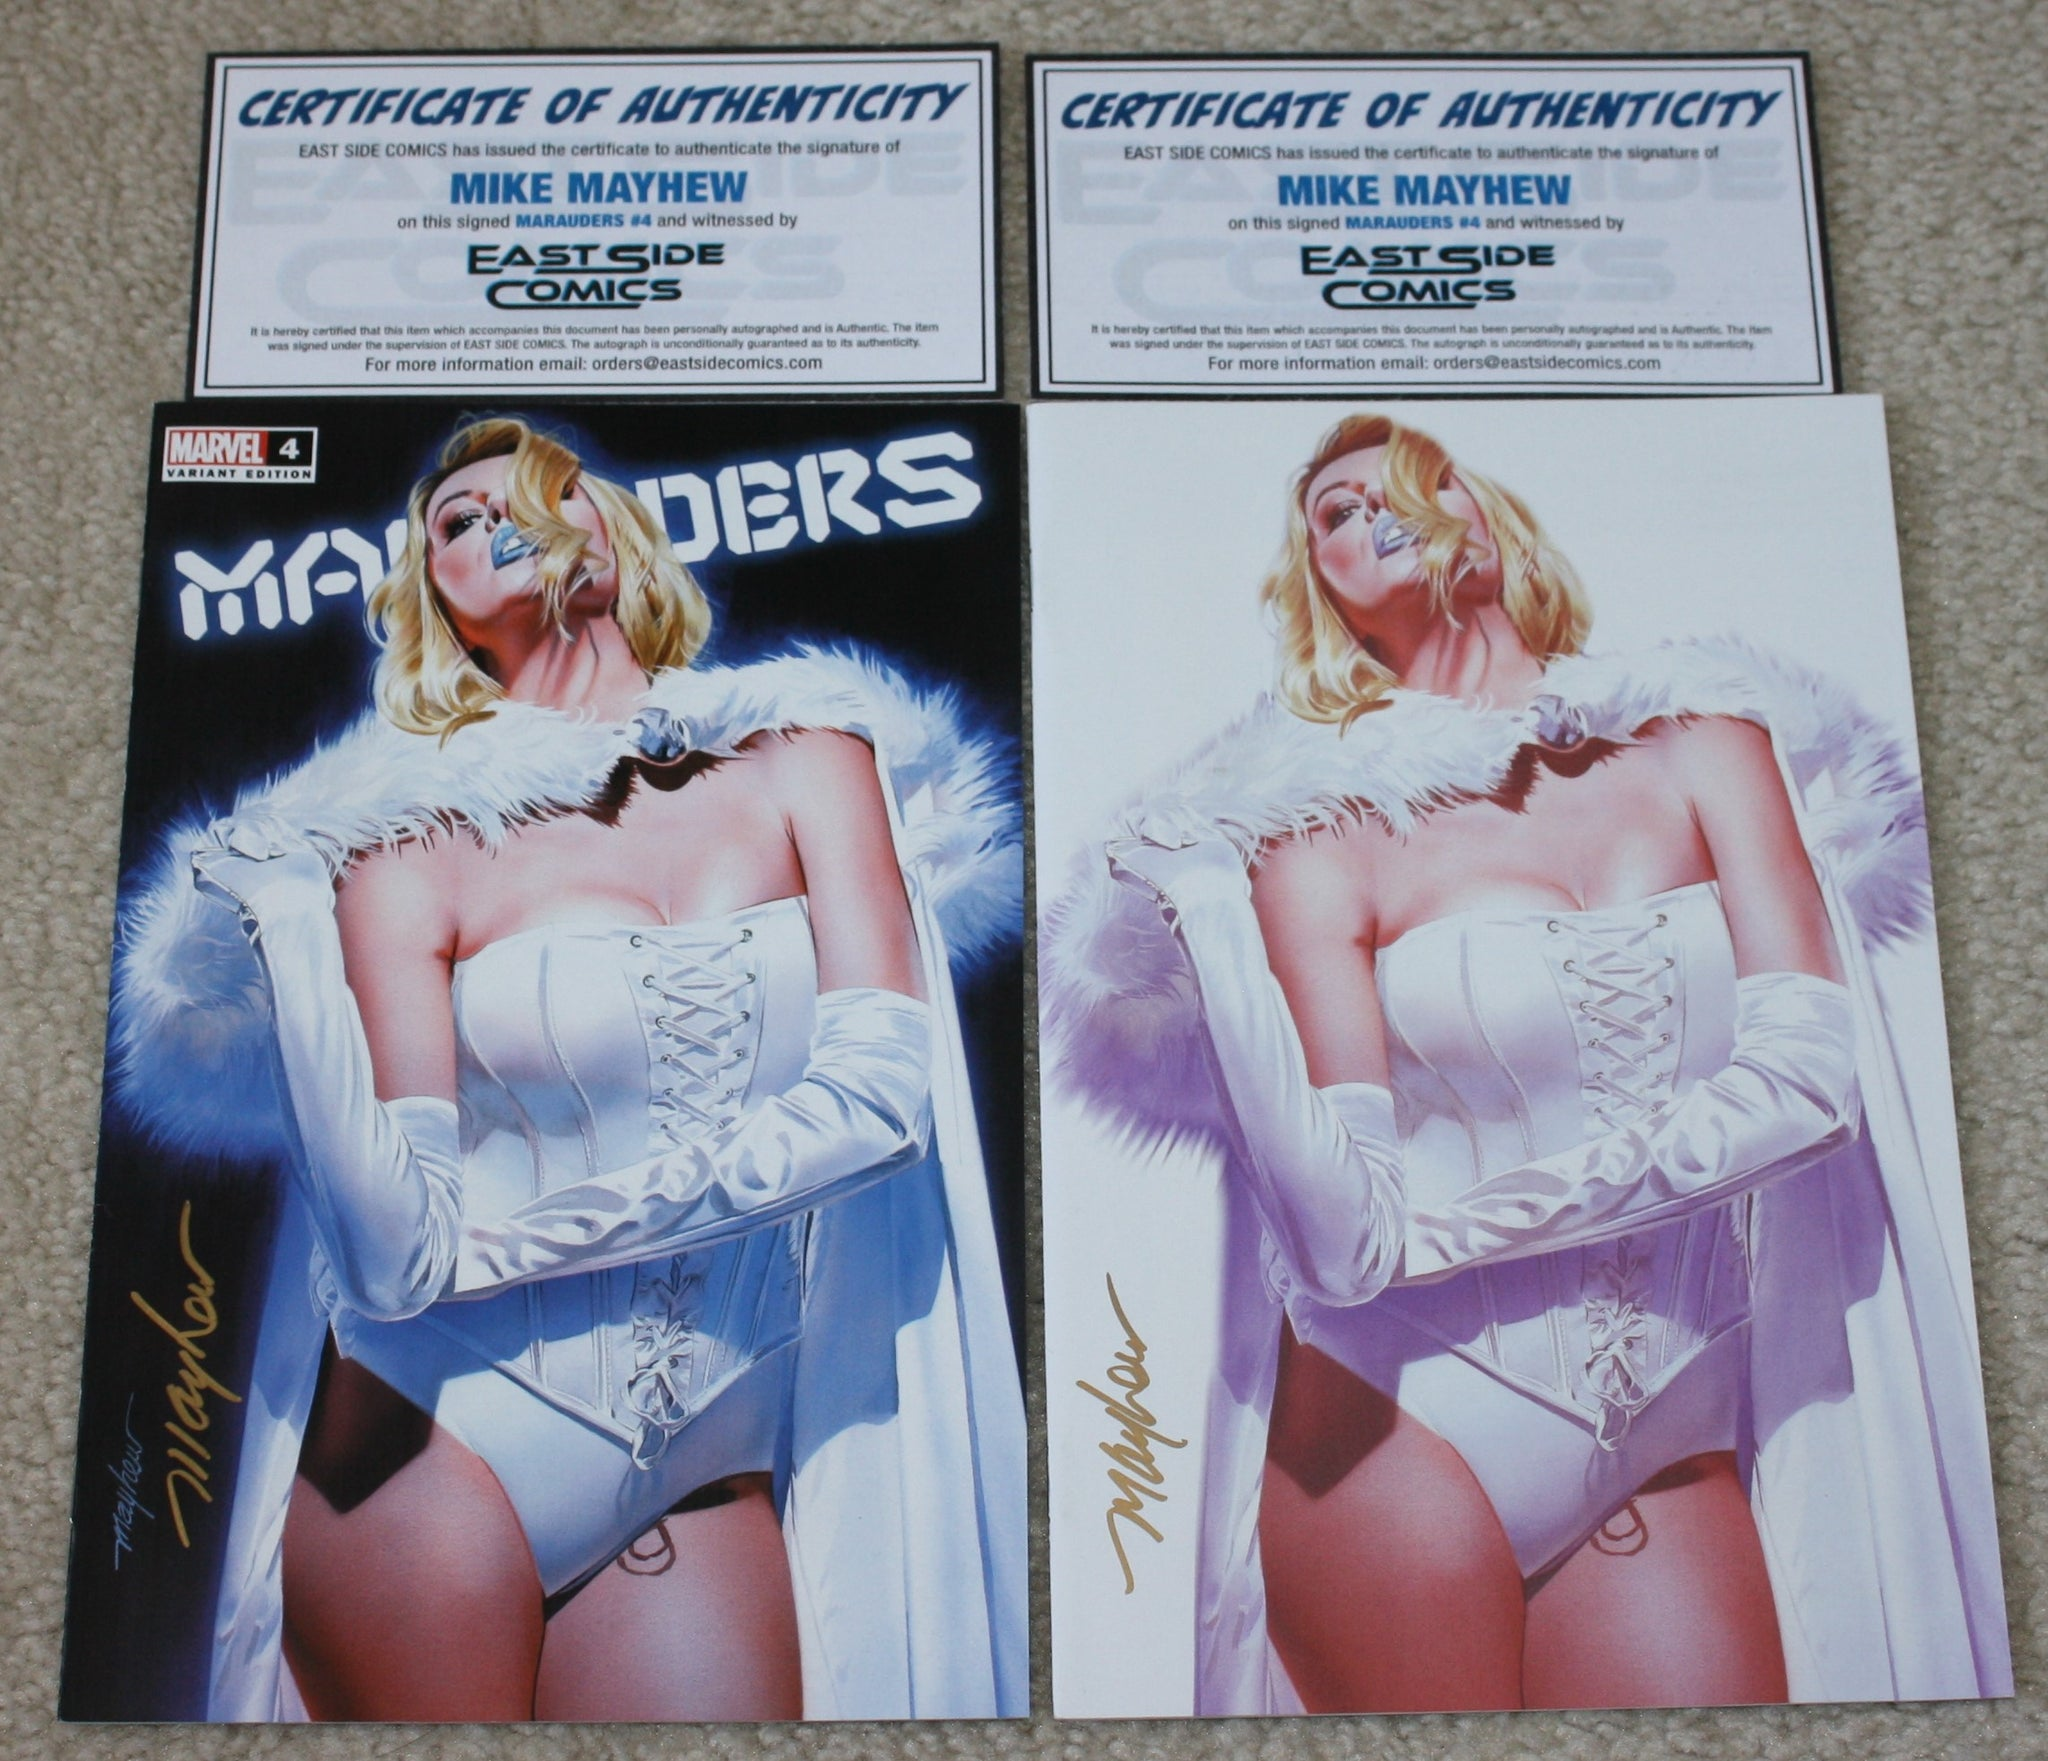 MARAUDERS #4 MIKE MAYHEW SIGNED COAs WHITE QUEEN LOGO & VIRGIN EXCLUSIVE VARIANTS